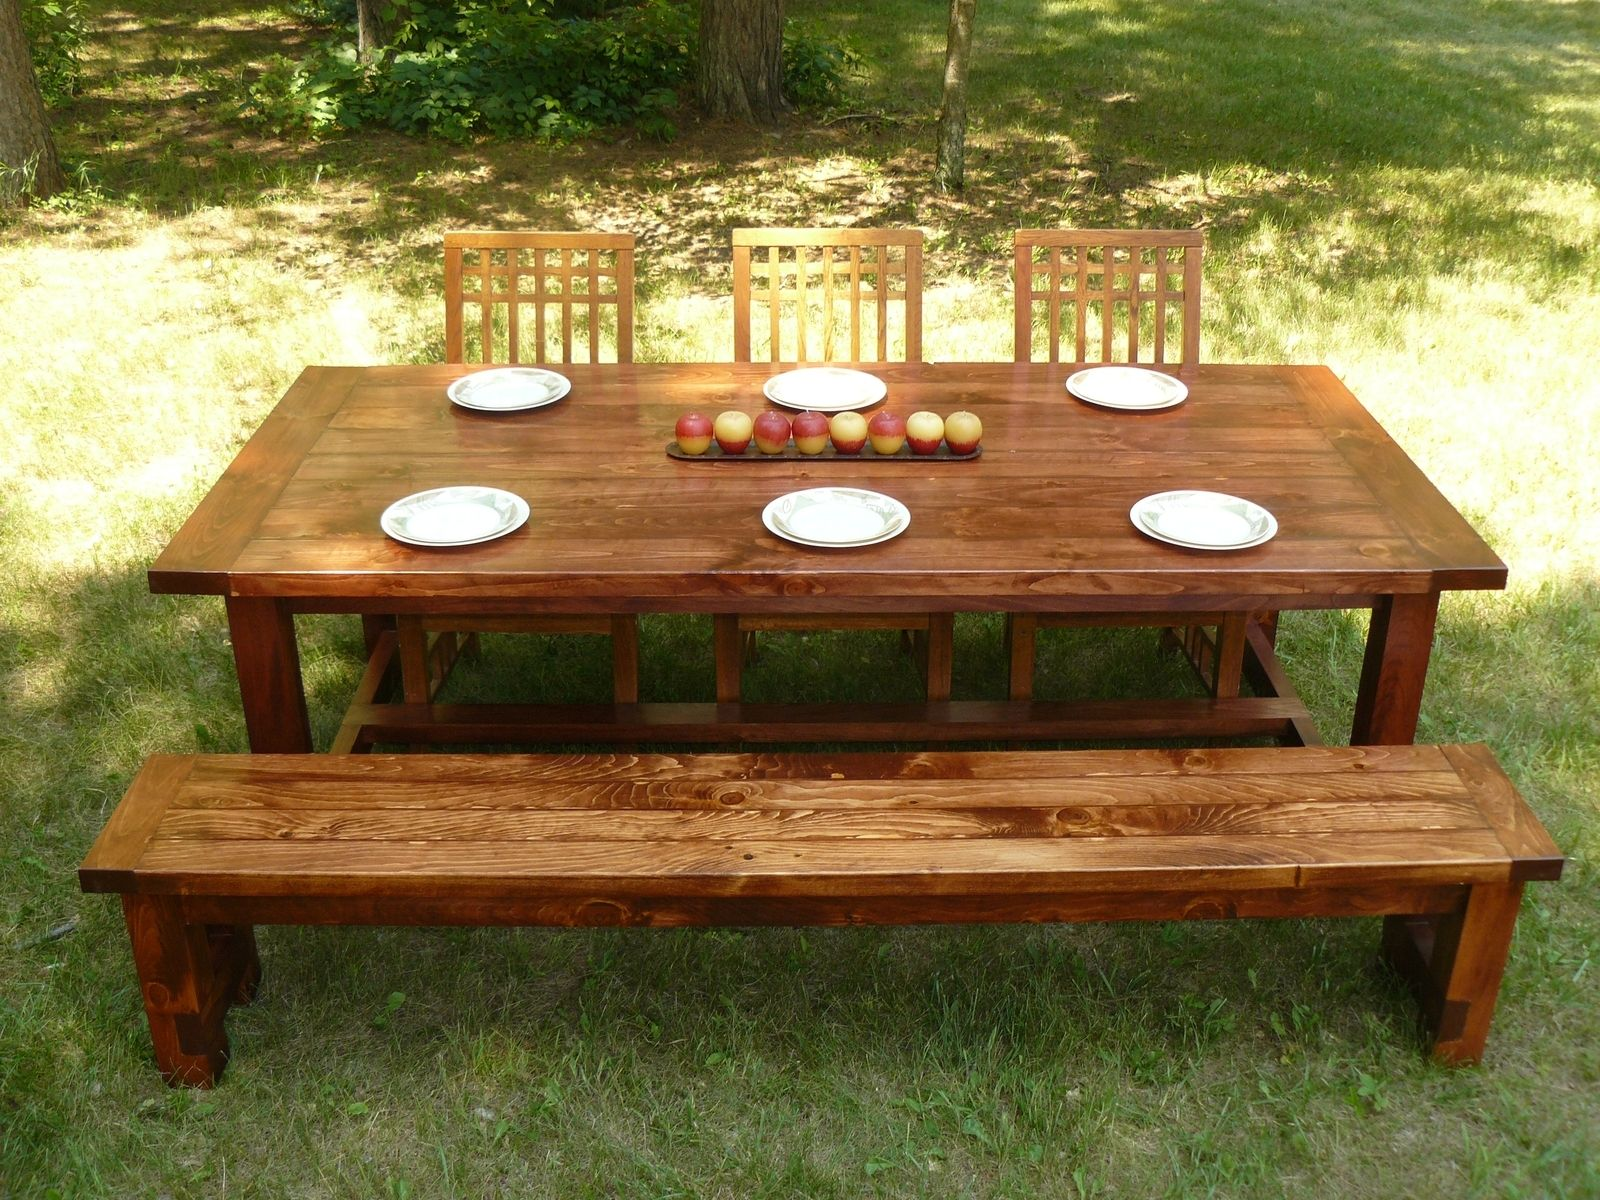 Hand Crafted White Pine Farmhouse Style Dining Table And Bench By Minnesota Farmhouse Custommade Com